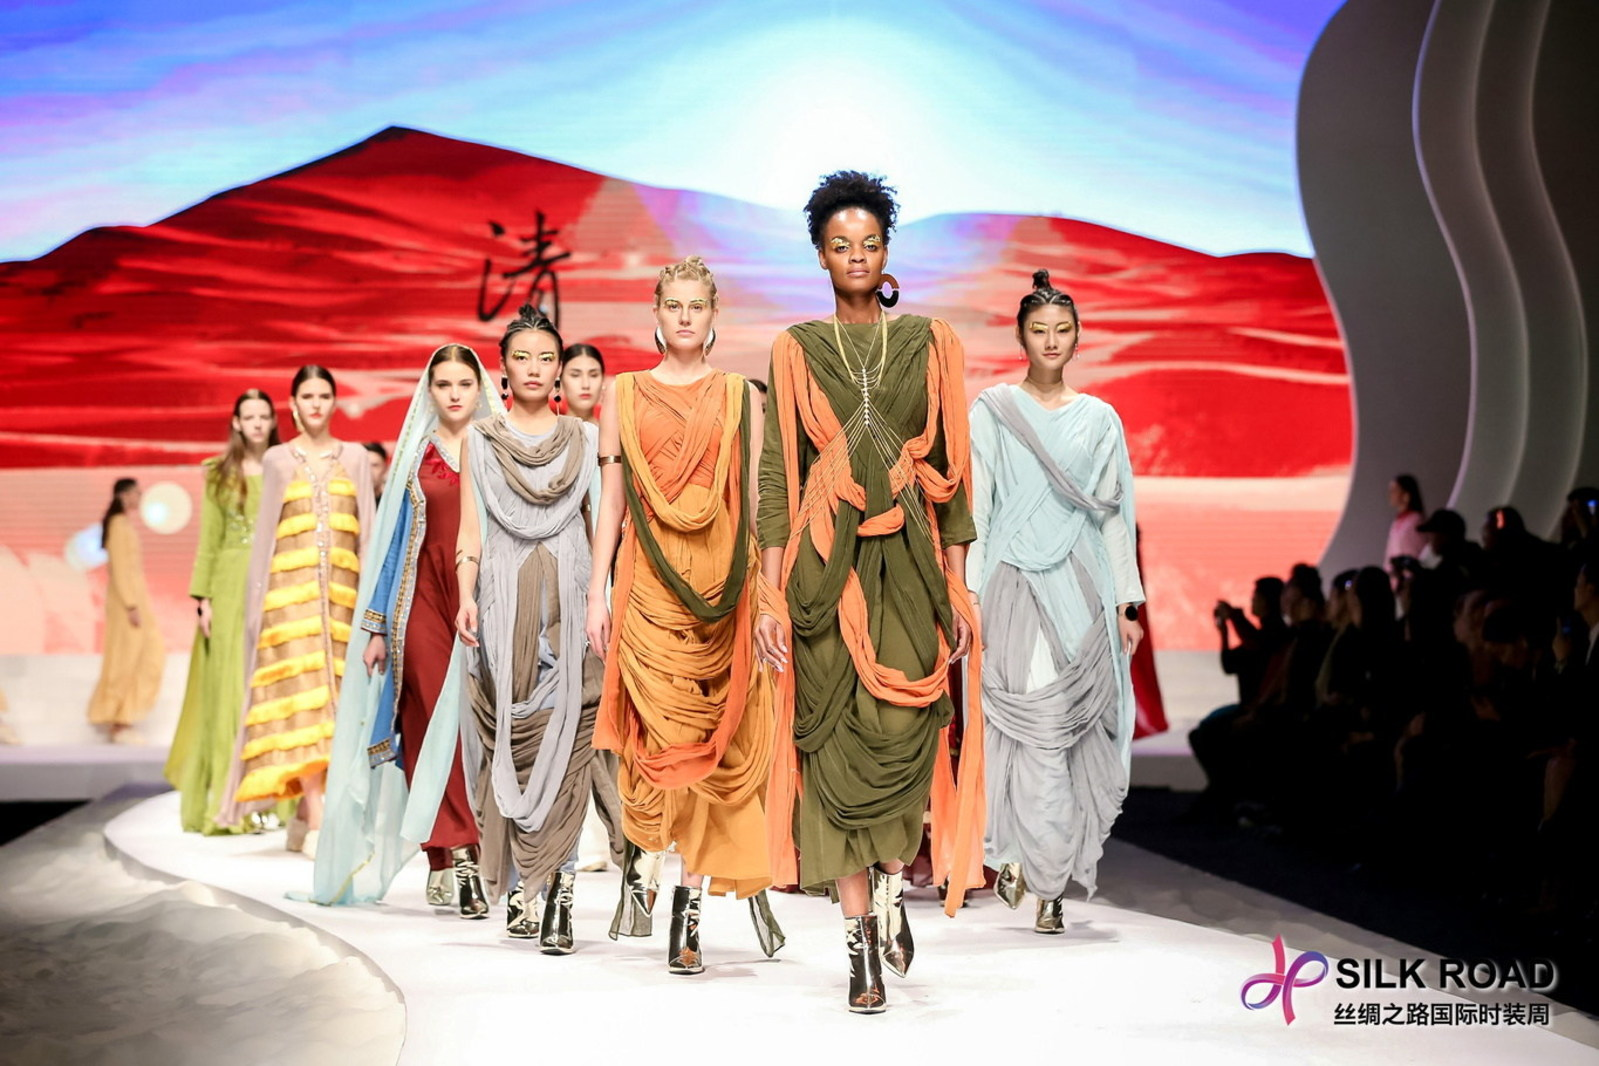 Silk Road International Fashion Week 2017 Held In Chongqing China Ocean Style